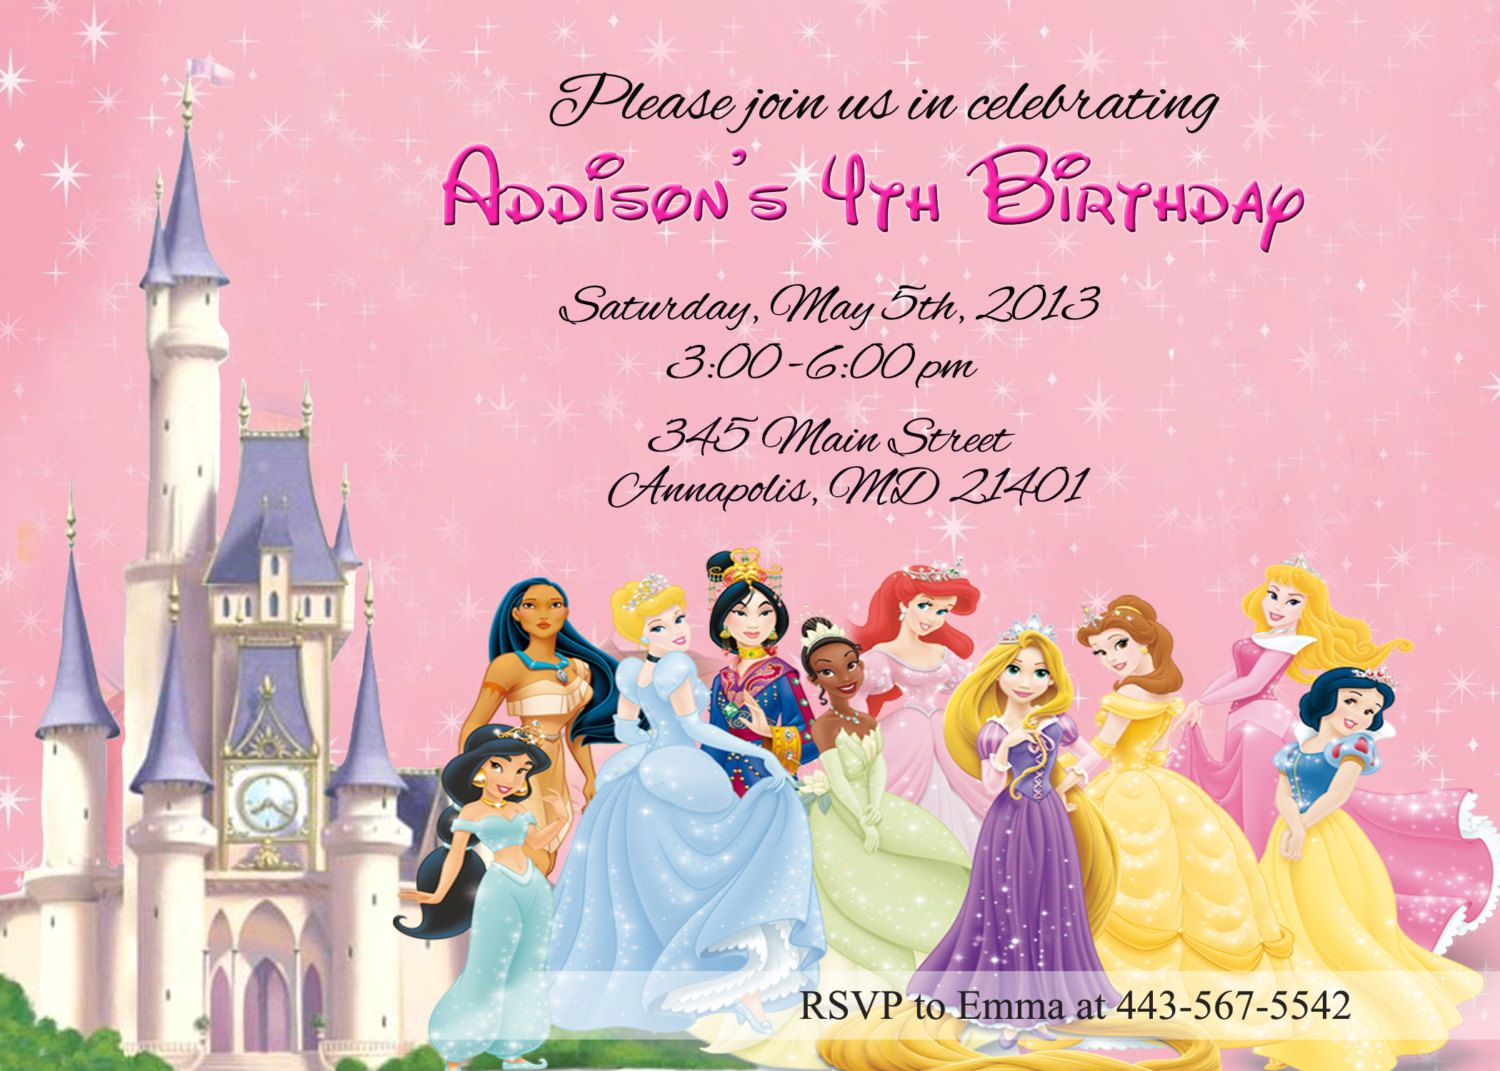 disney princesses birthday party invitation printable princess invitation disney princess invitation birthday princess invitation printable princess invite birthday party disney princesses by